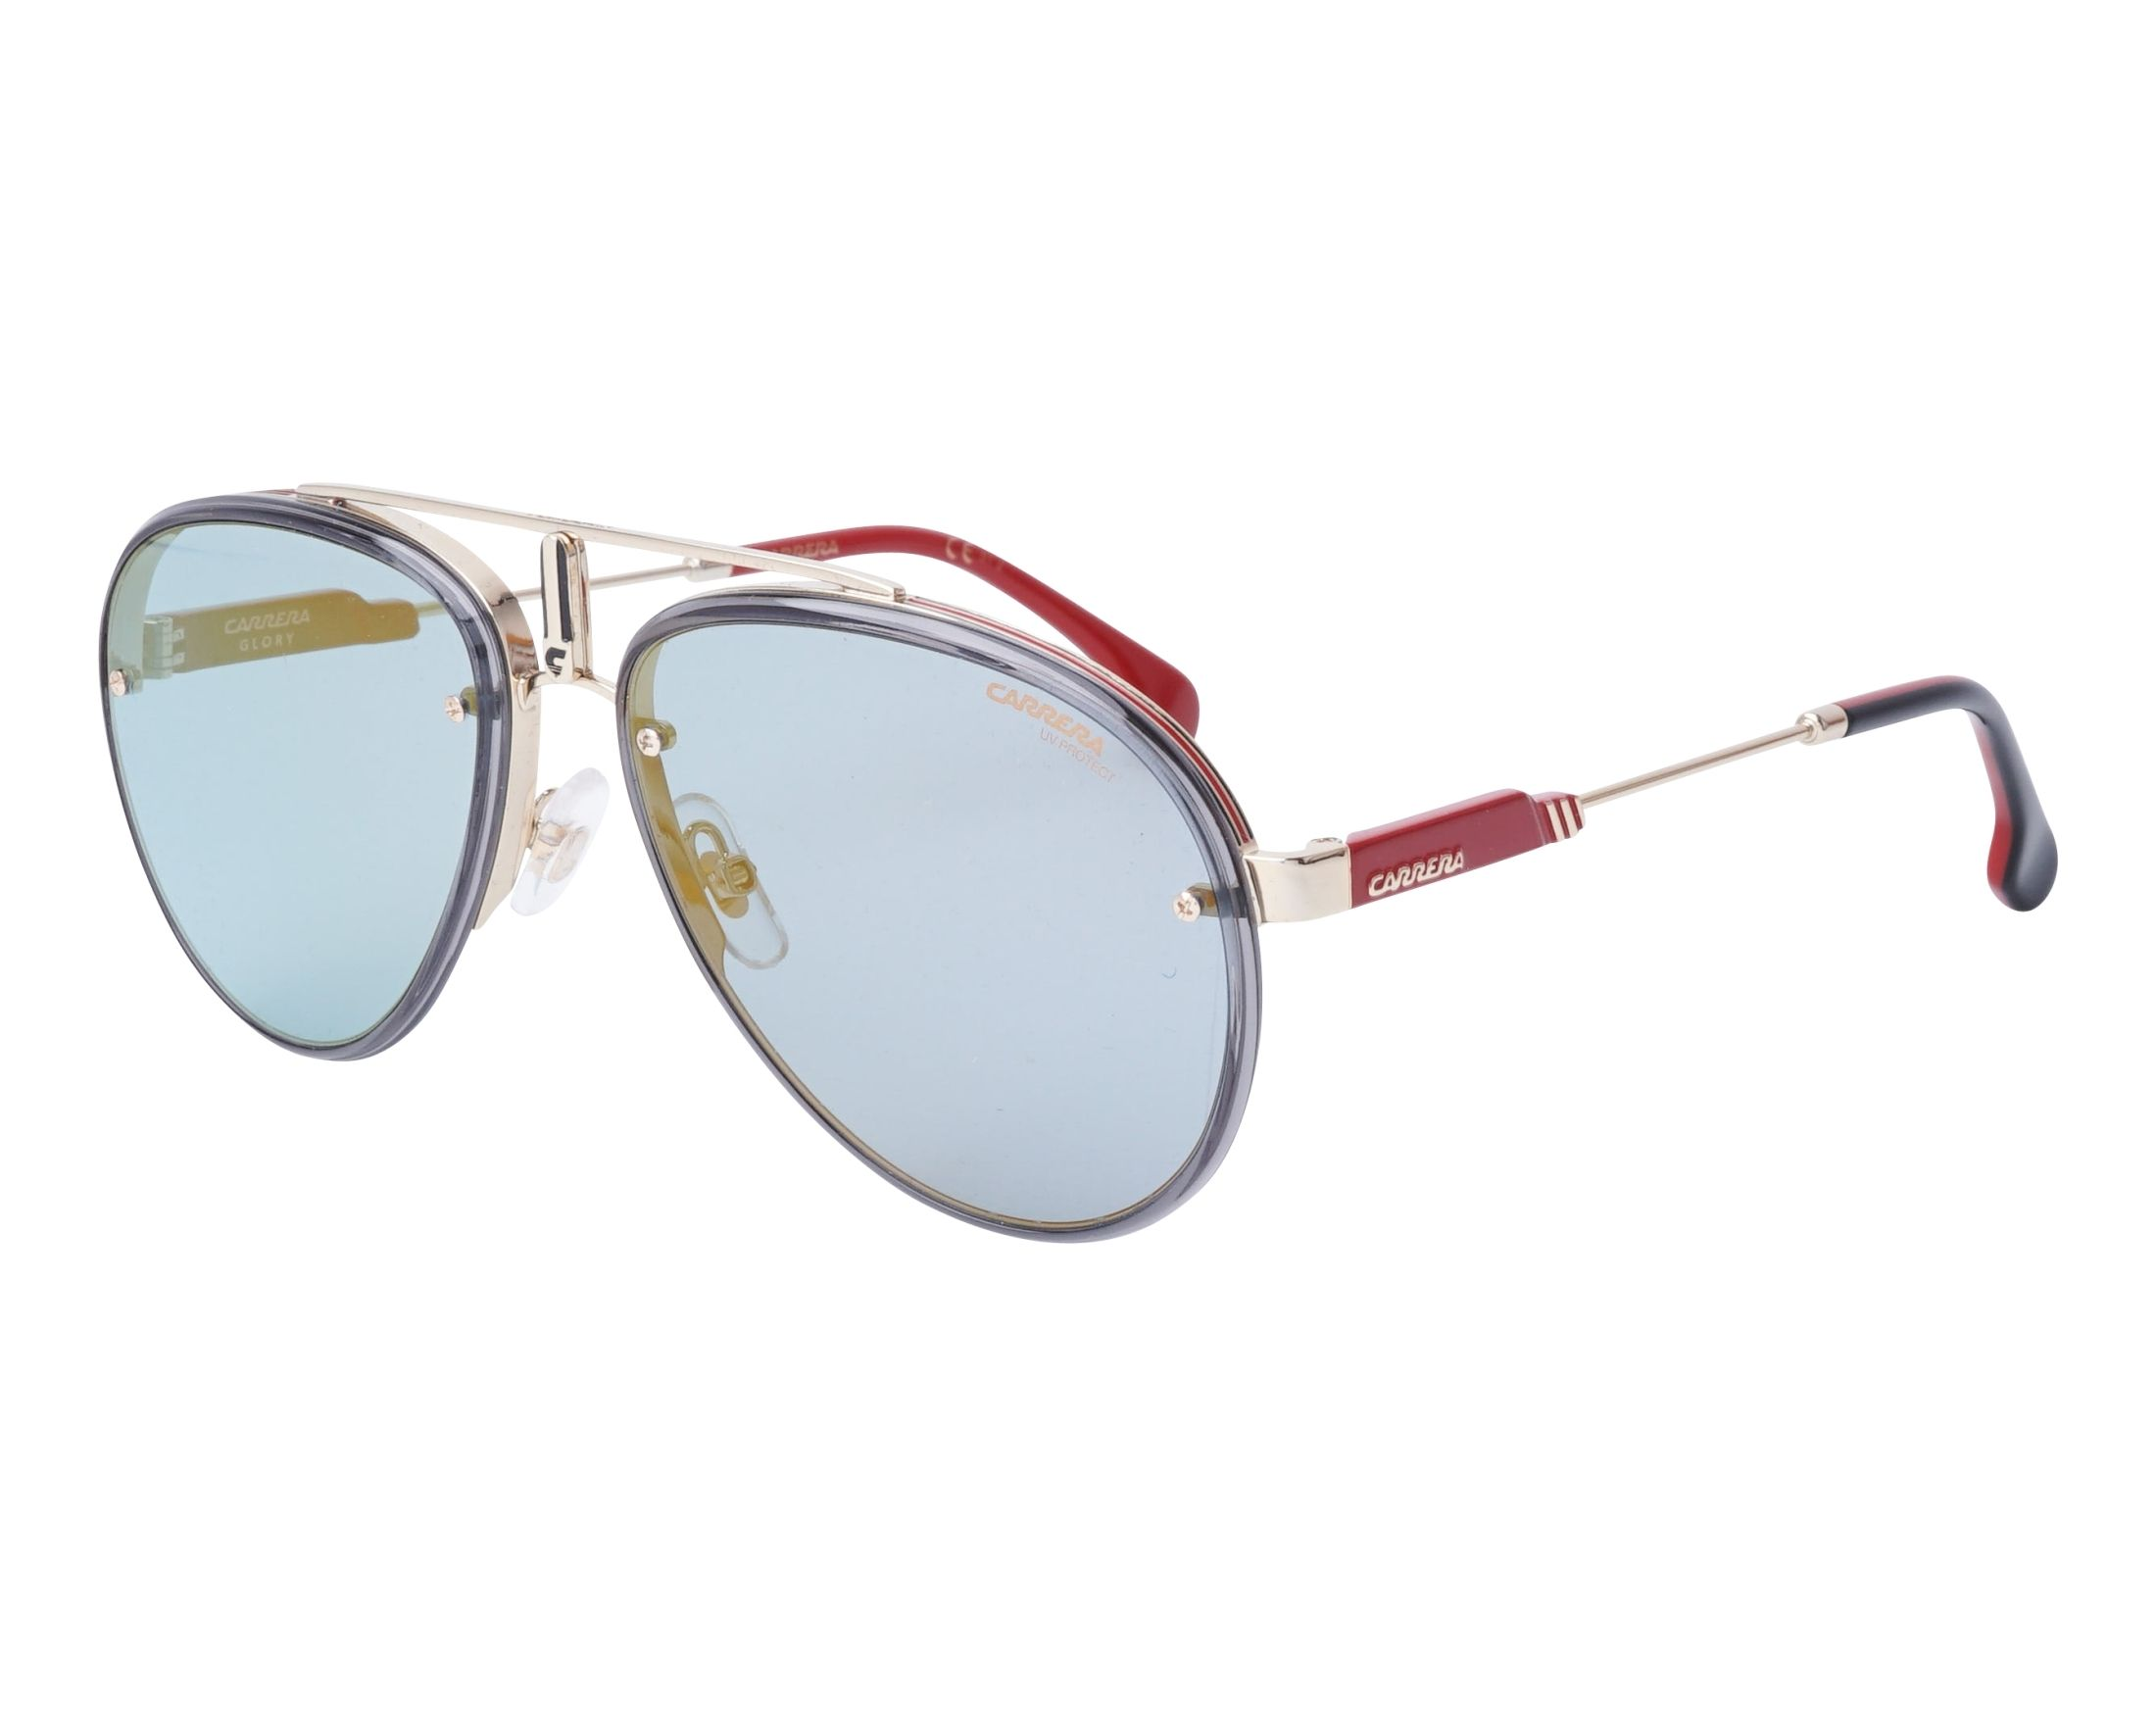 Details about NEW Carrera GLORY LKS2Y Gold Blue Sunglasses 06a438af24